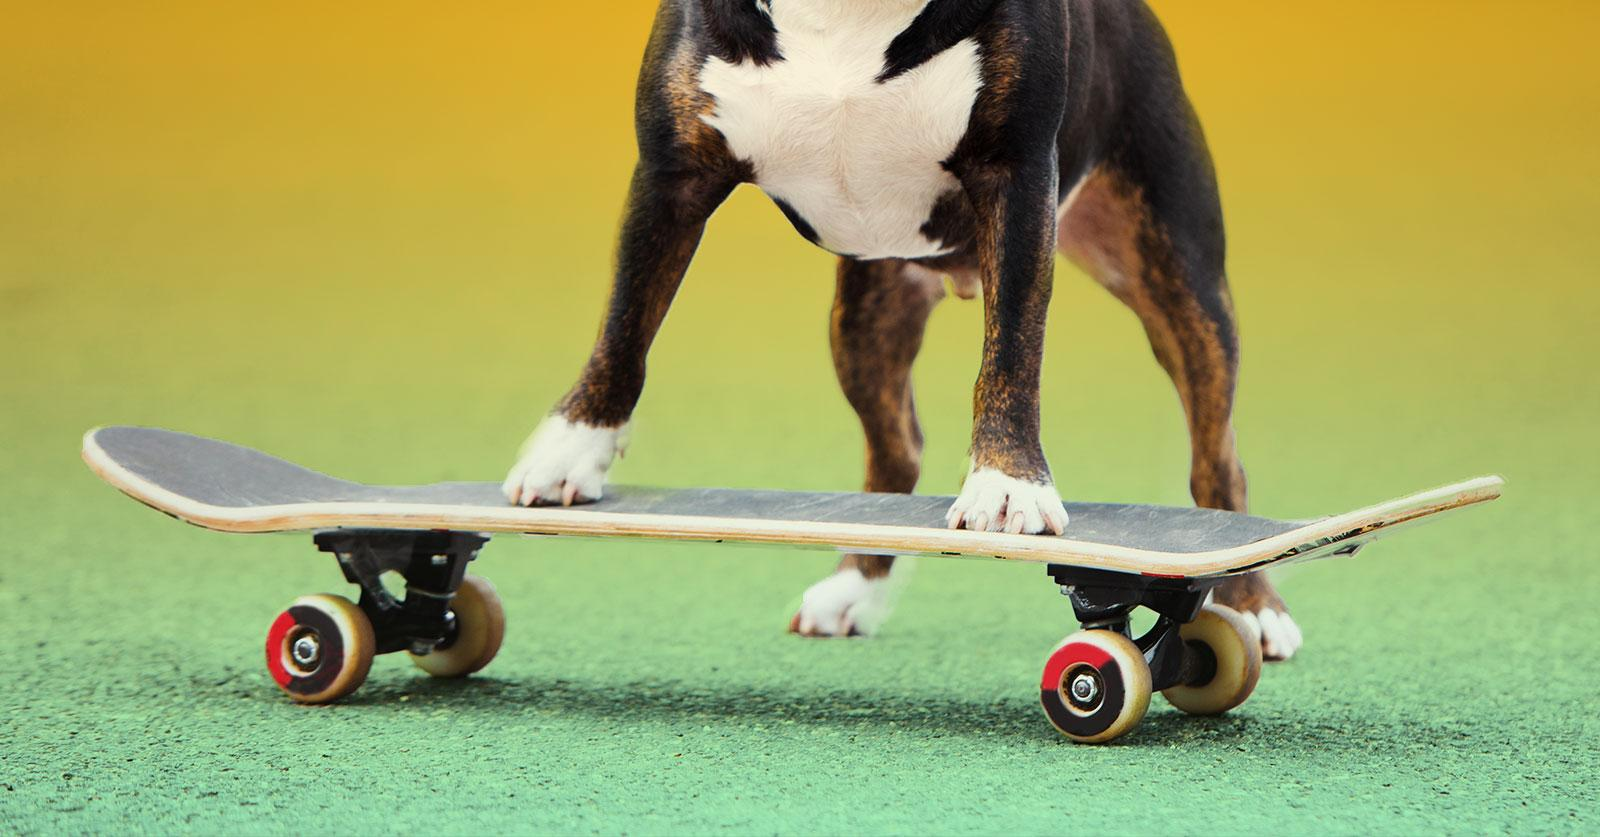 frenchieskateboard-1492614787979.jpg